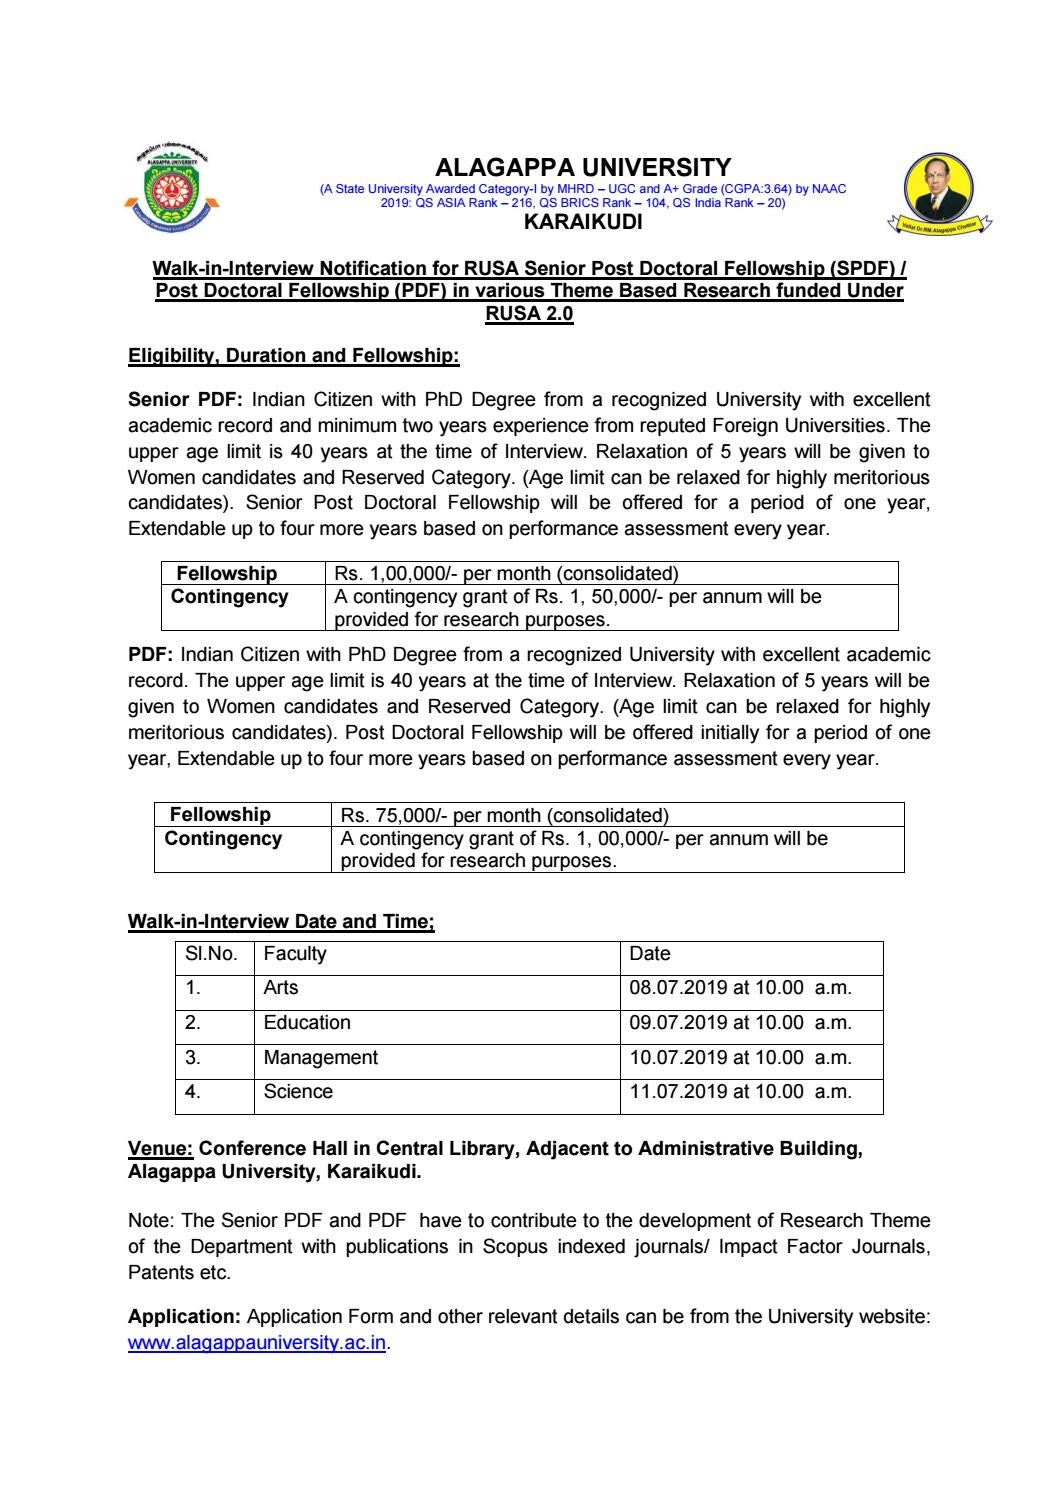 Biological Sciences Fellowship of Rs  1 Lakh pm Under RUSA